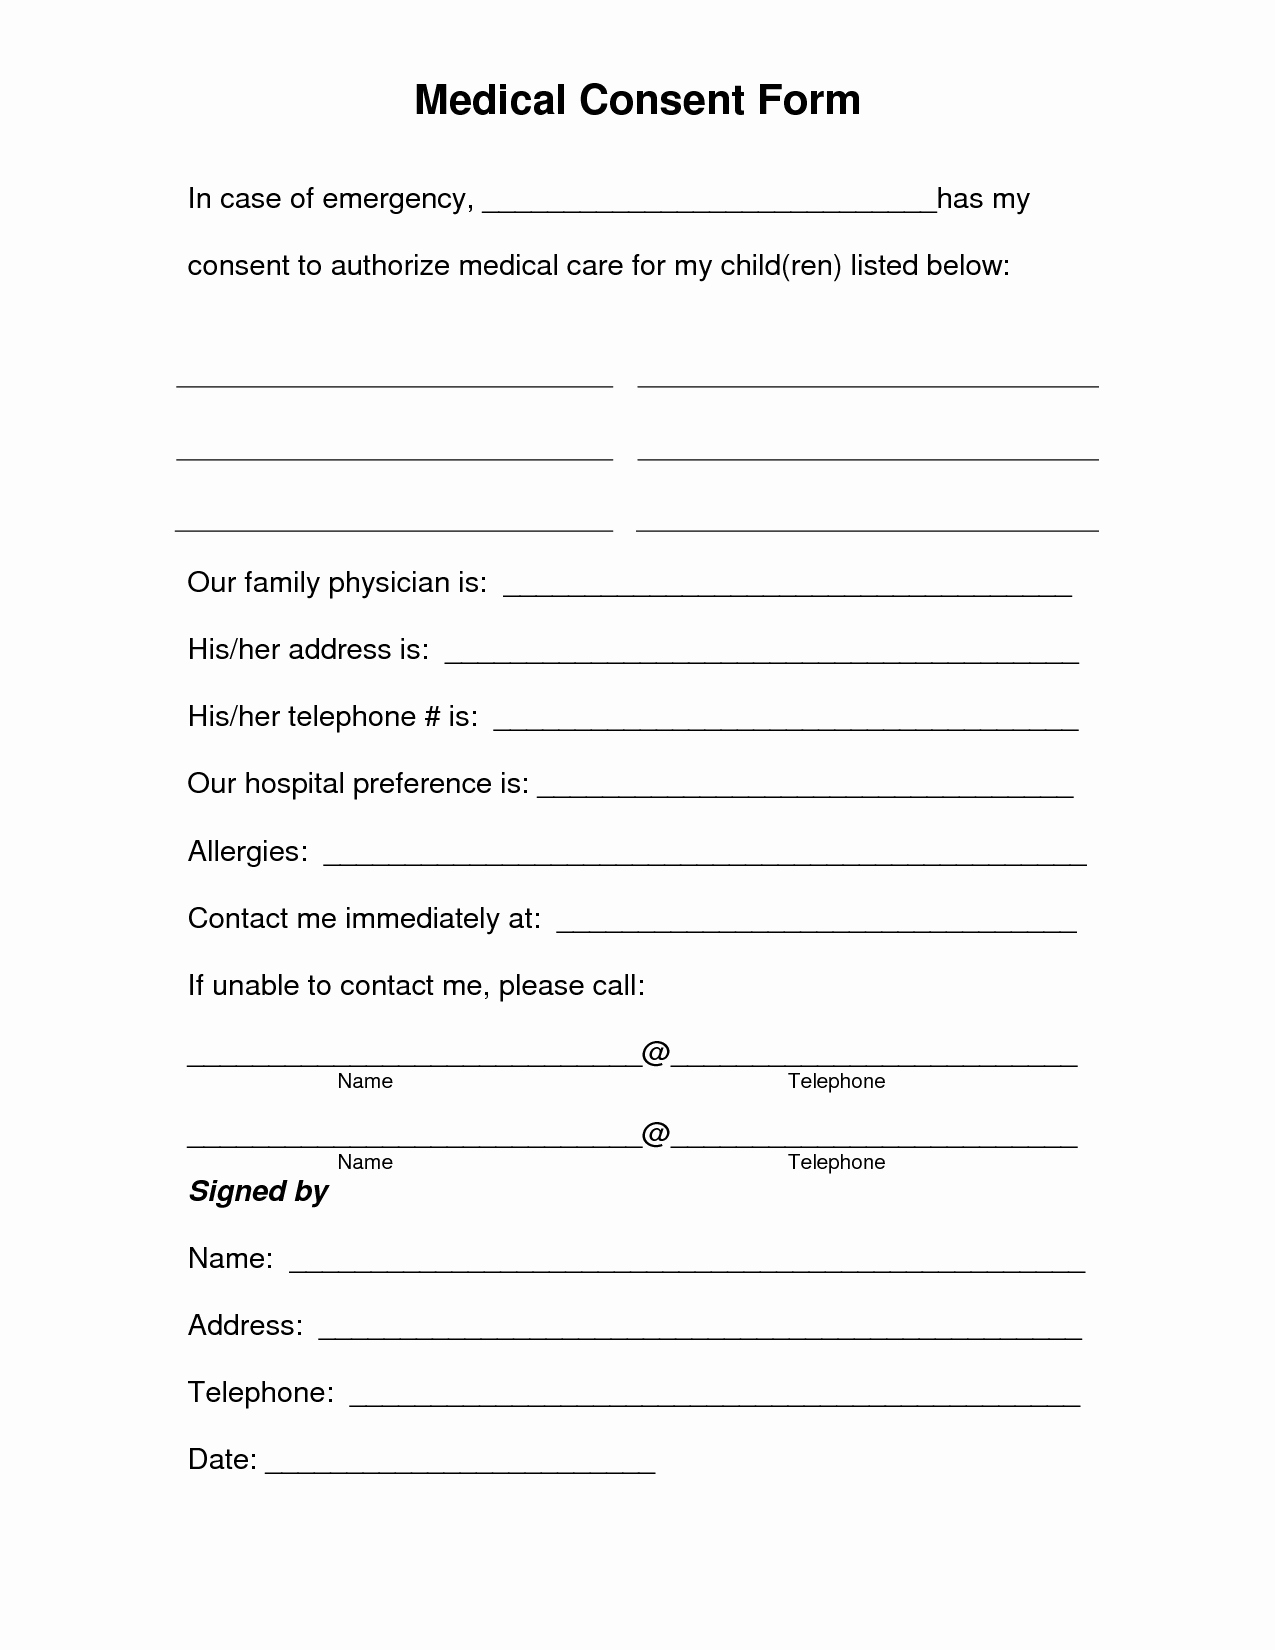 Consent form Sample for Parents Elegant Free Printable Medical Consent form Free Medical Consent form the Girls